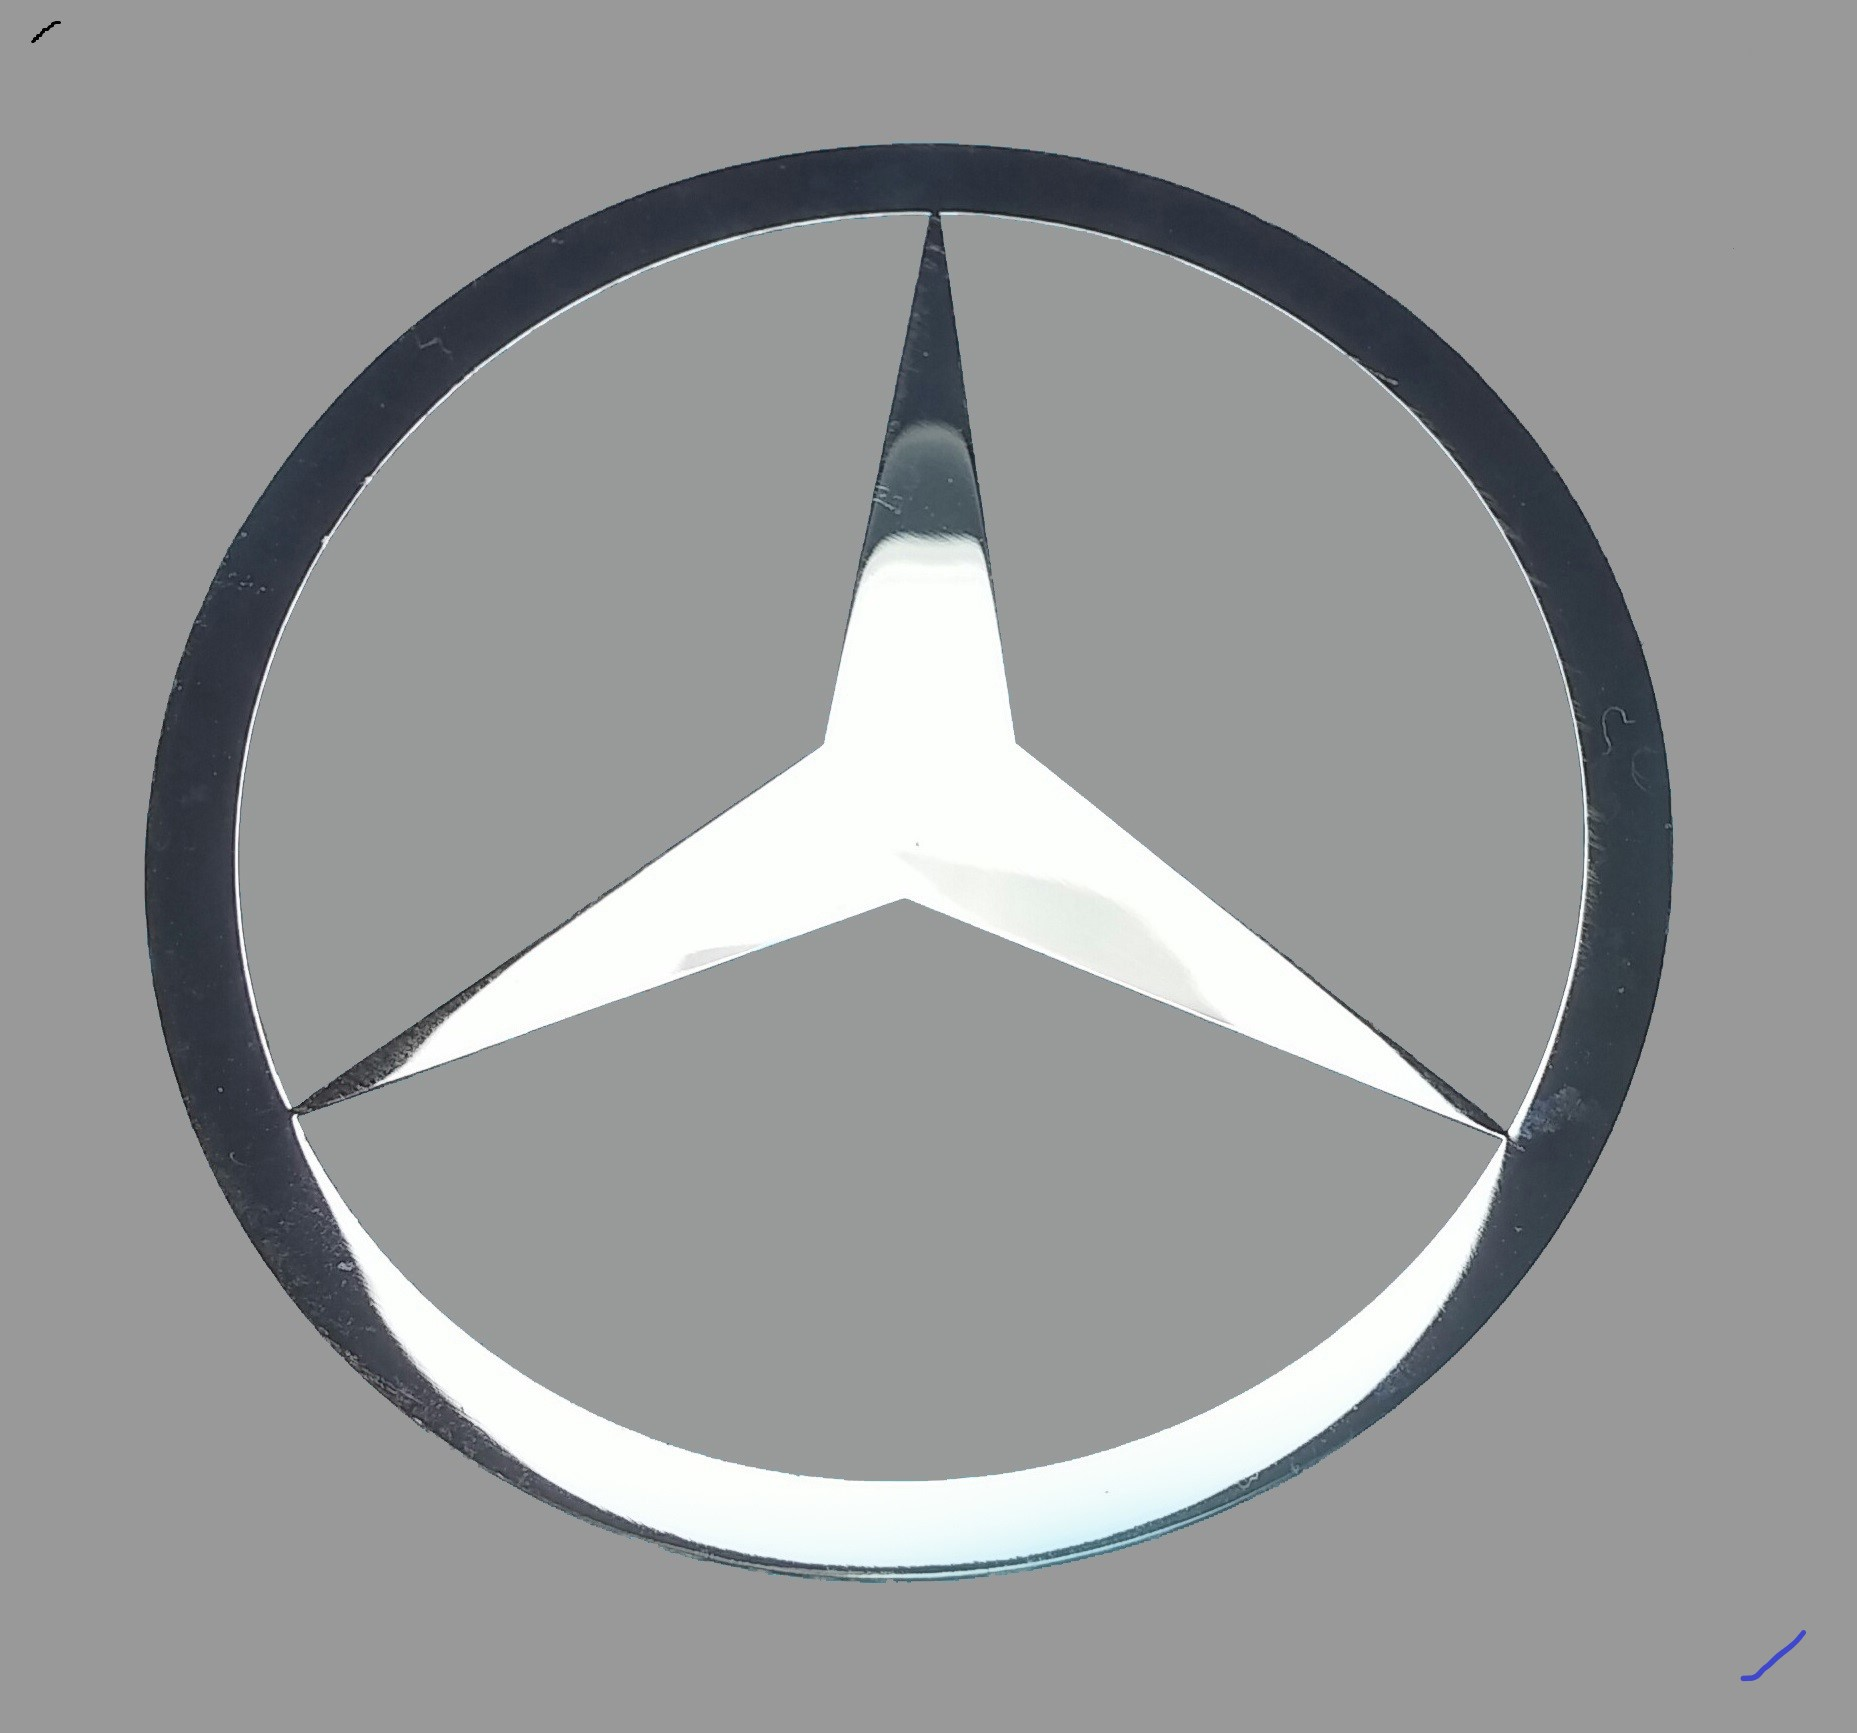 MERCEDES LOGO nalepka Metal Edition 60 a 32 mm